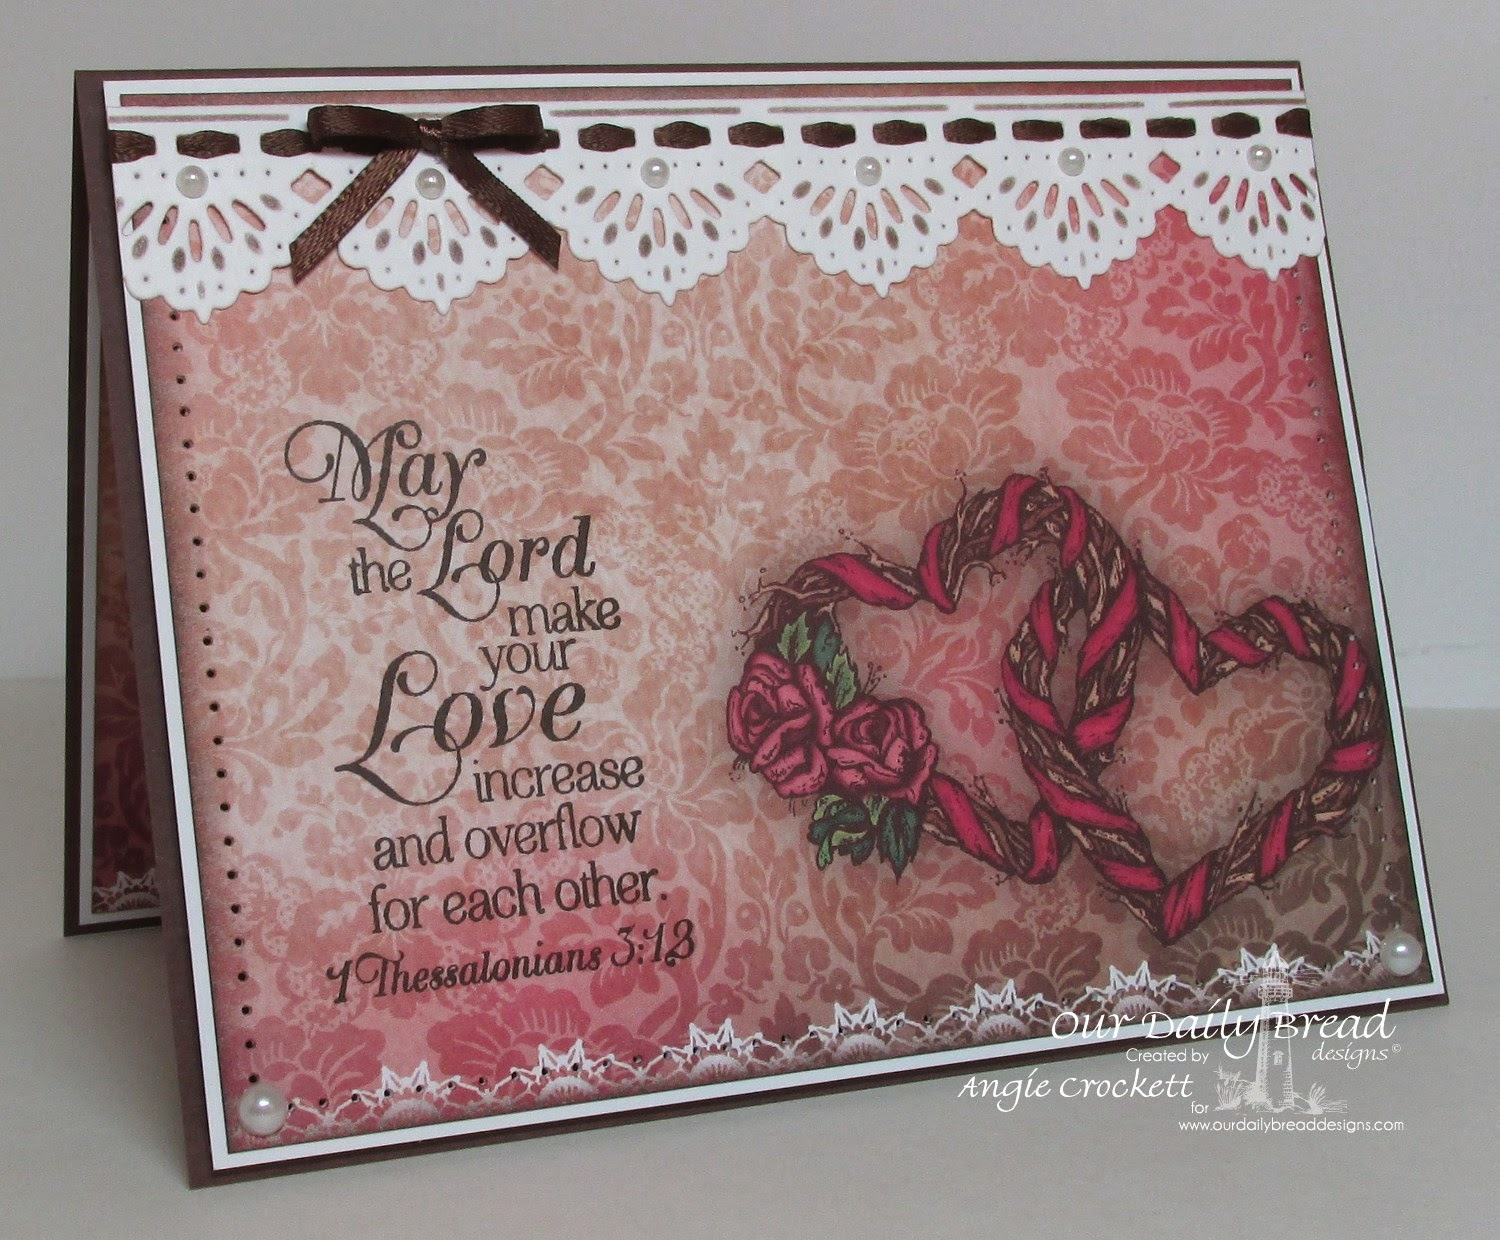 ODBD Heart and Soul Paper Collection, ODBD Love Scriptures, ODBD Custom Beautiful Borders Dies, Card Designer Angie Crockett